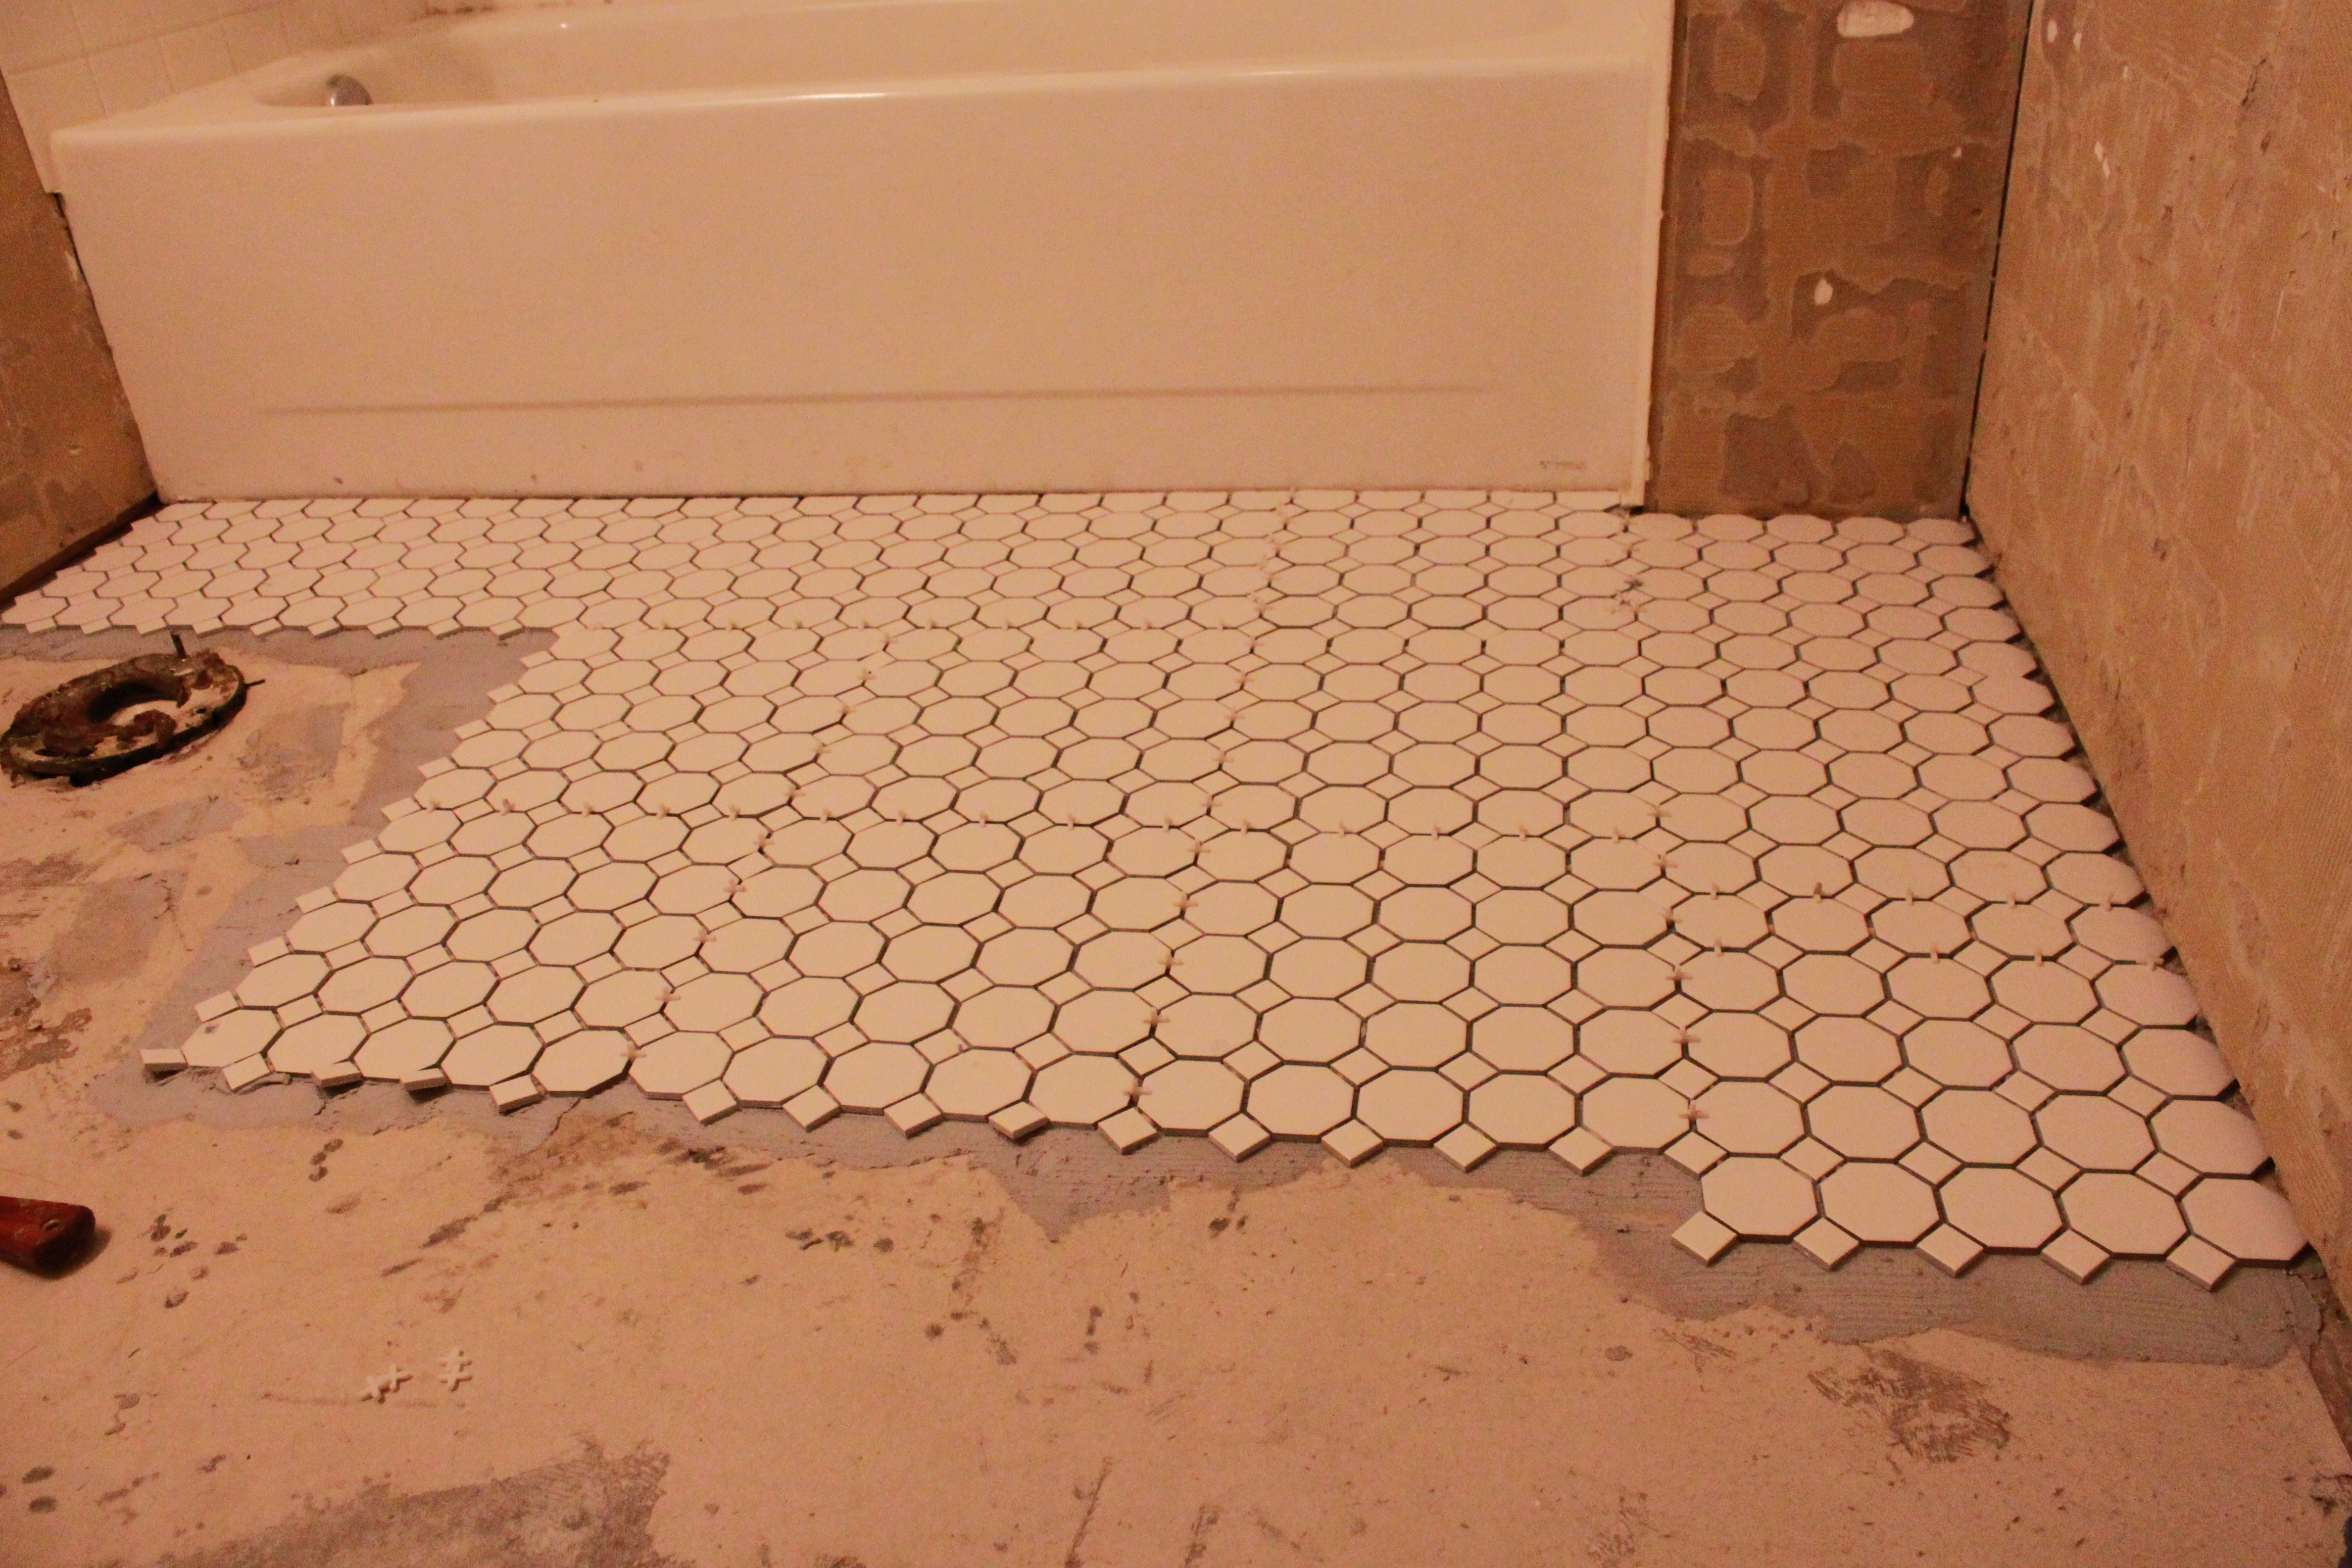 Guest bathroom reno tiling the floors all things new interiors spread your thin set with a trowel and use the notched side to get off any excess and make sure its level lay the tile and press firmly place spacers dailygadgetfo Gallery